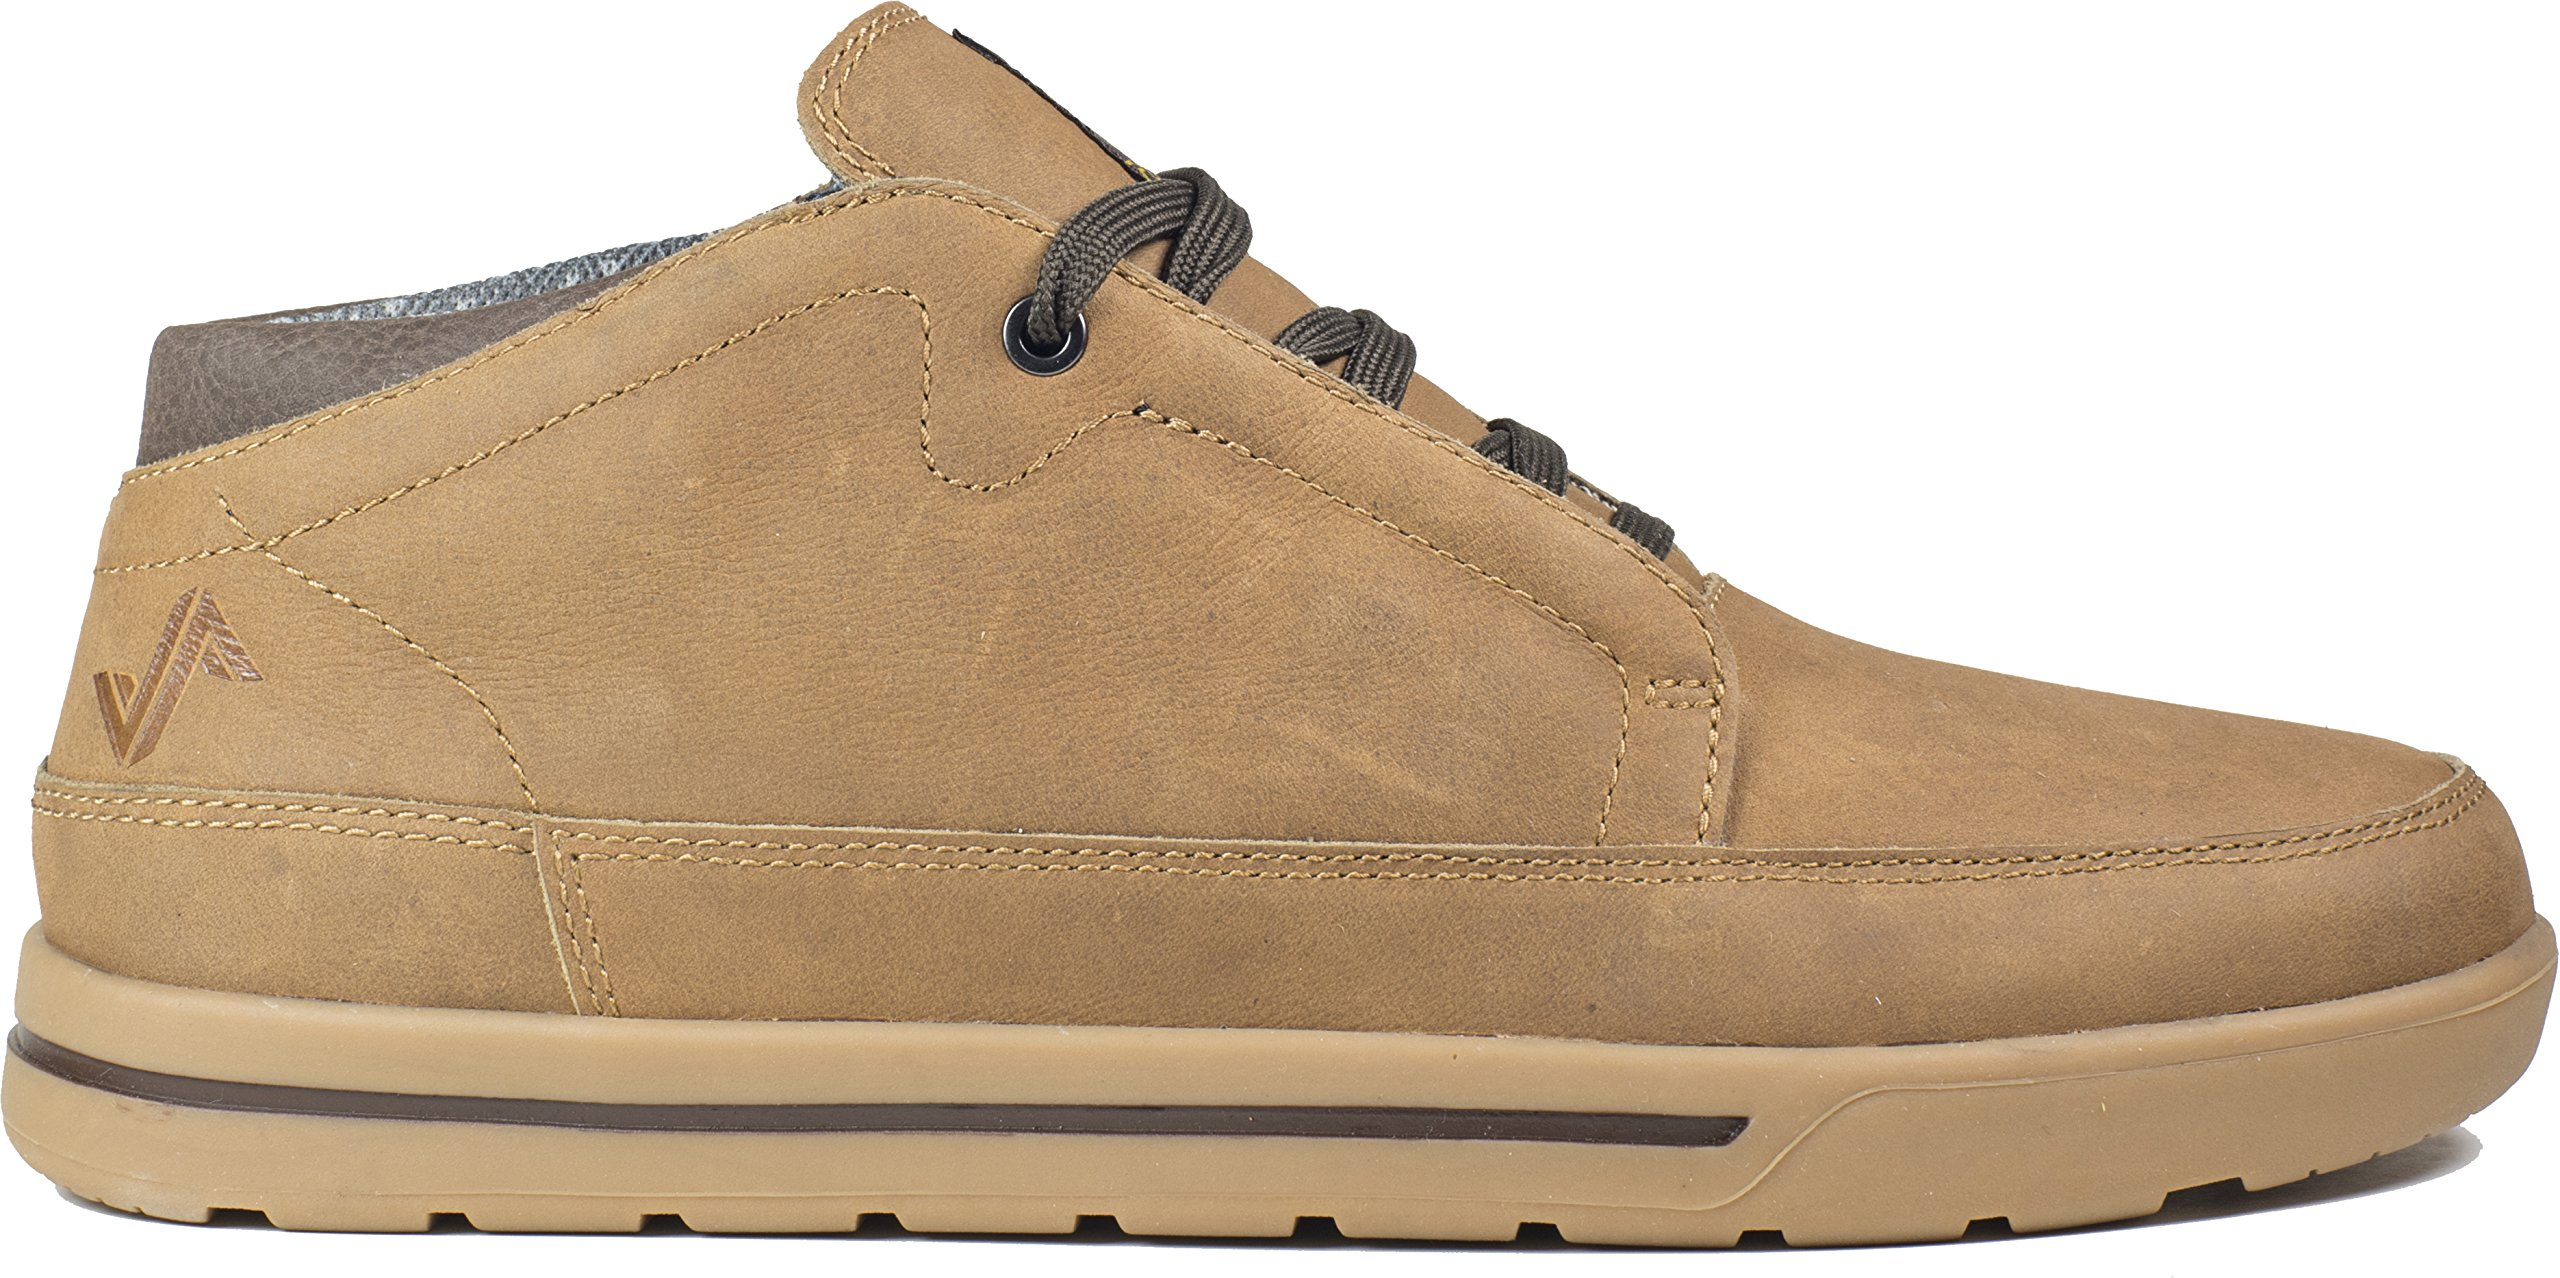 Forsake Phil Chukka - Men's Casual Leather Mid-Top (10.5, Tan)